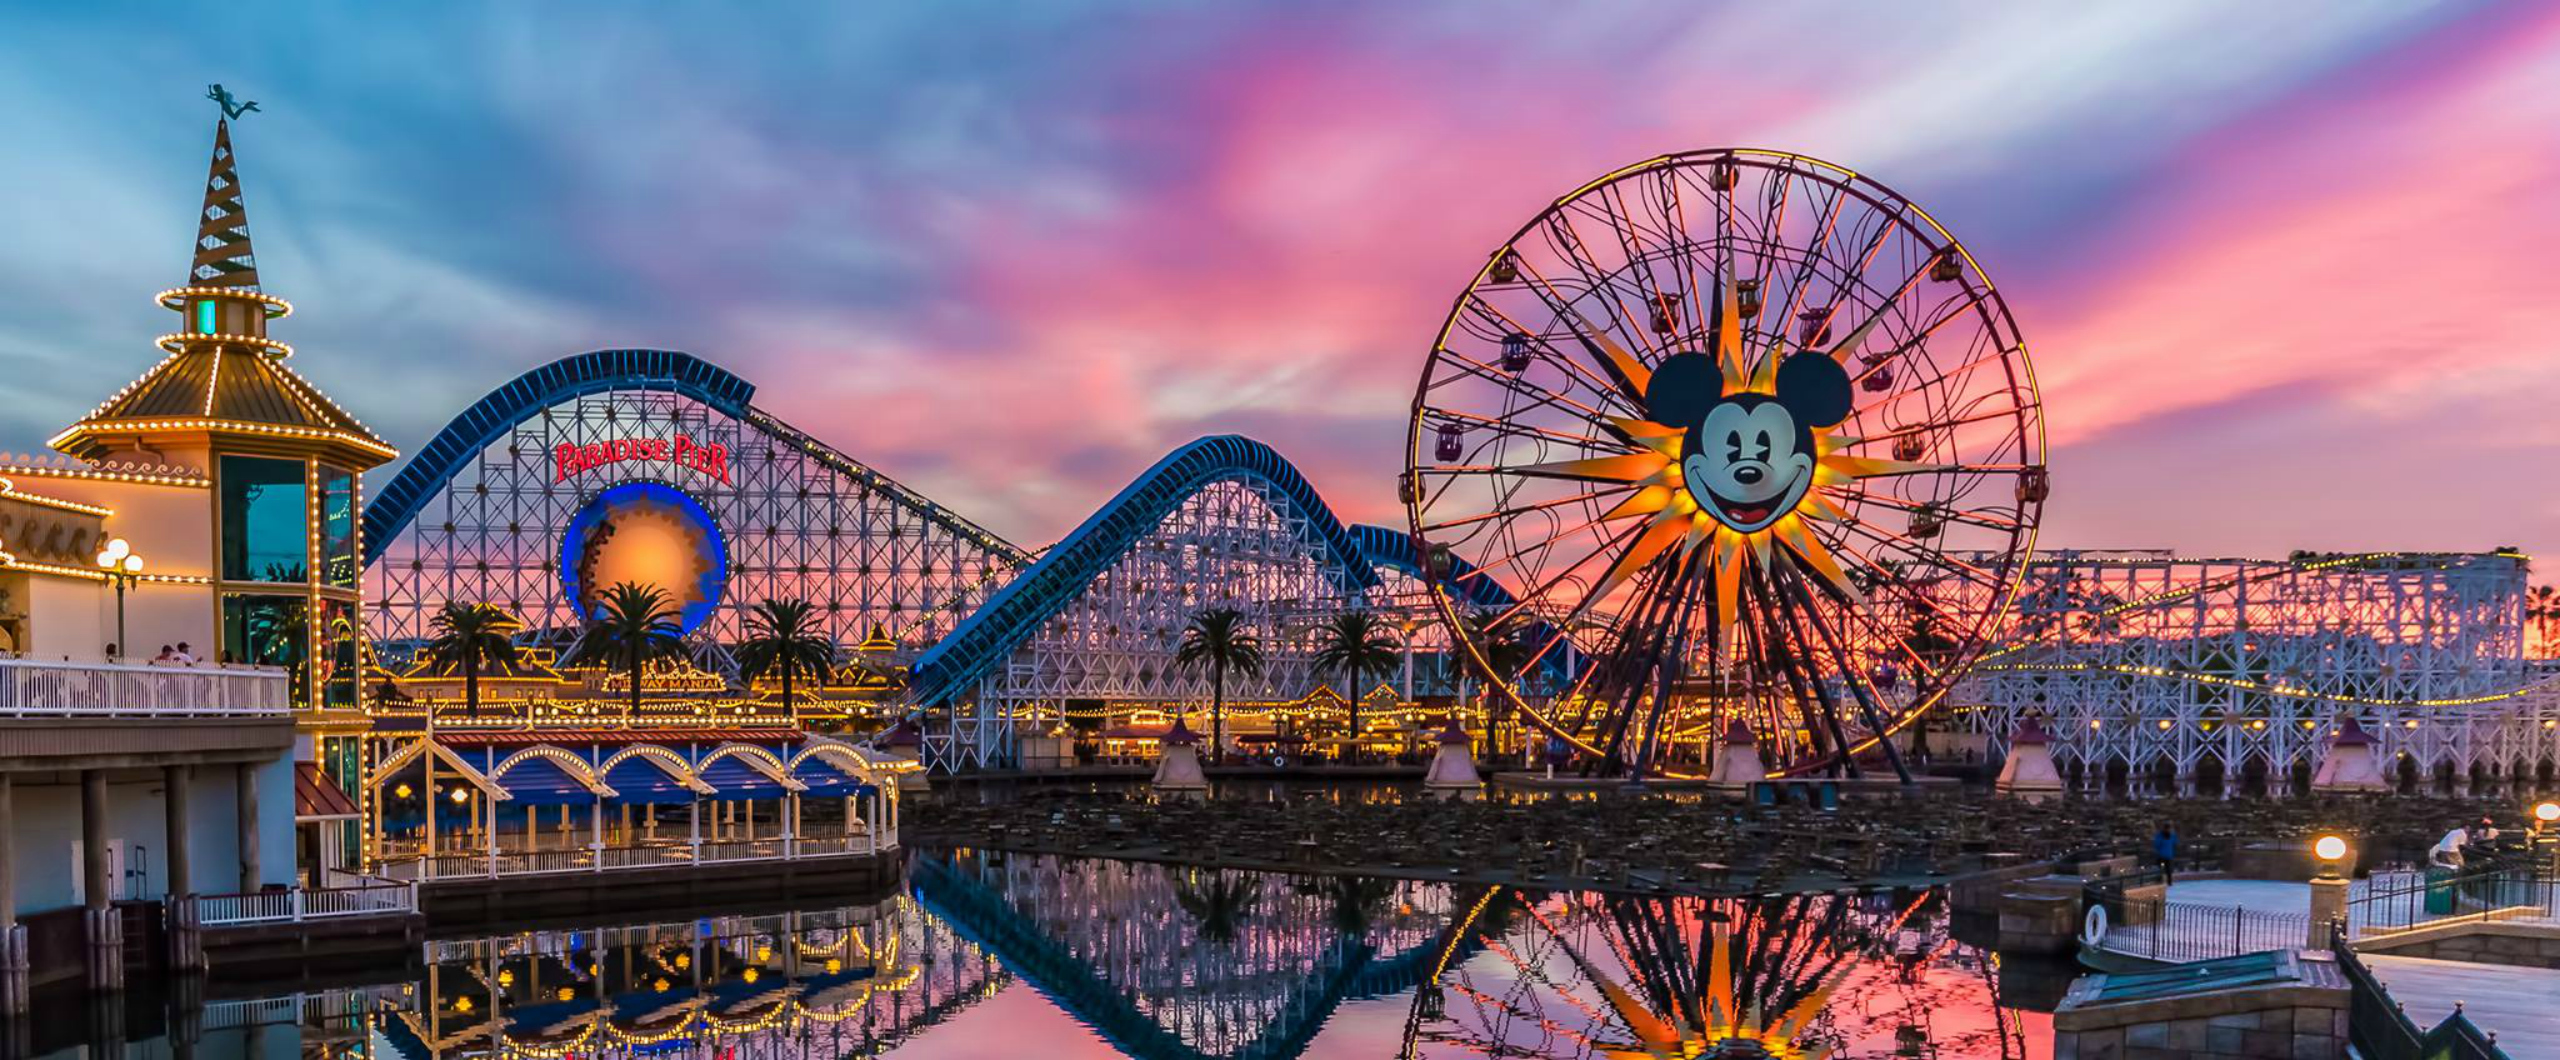 theme parks have forbidden the use of selfie sticks